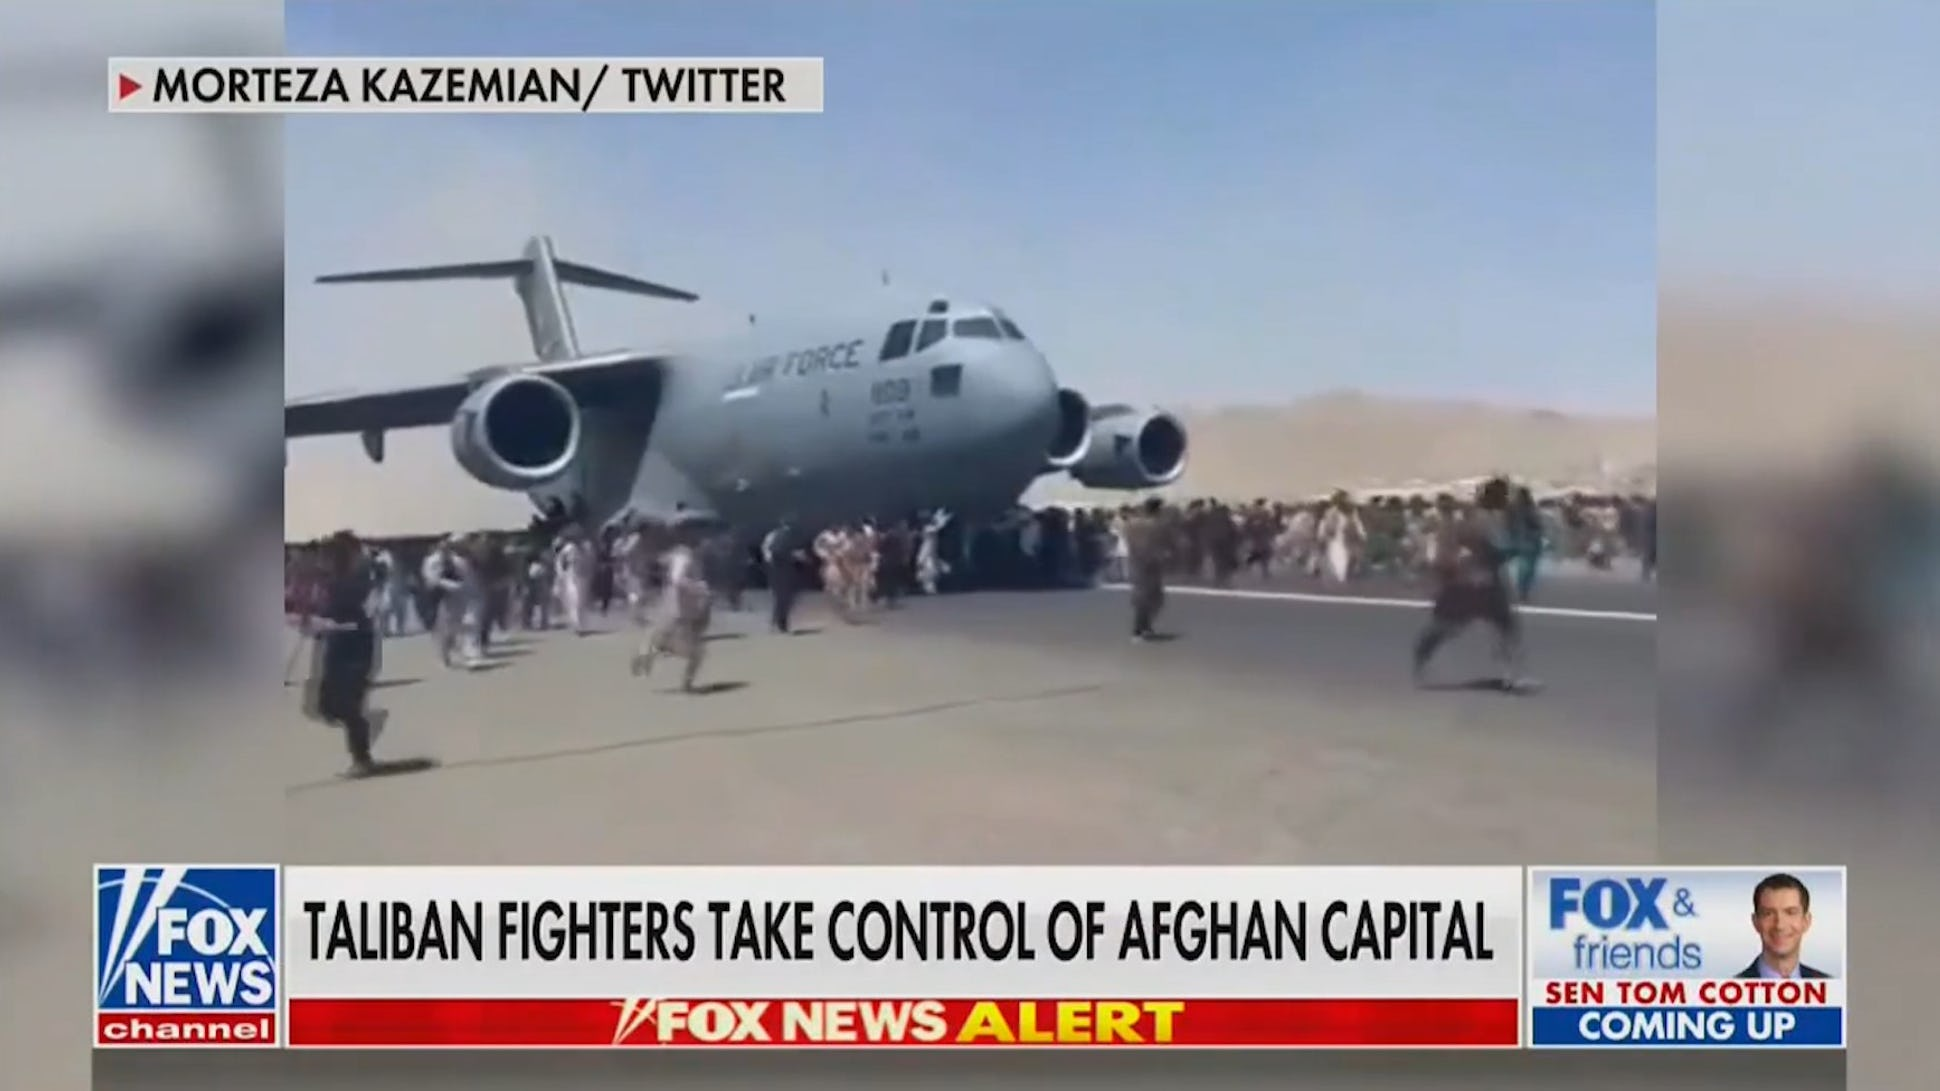 Faux president Biden and team are AWOL after epic failure in Afghanistan